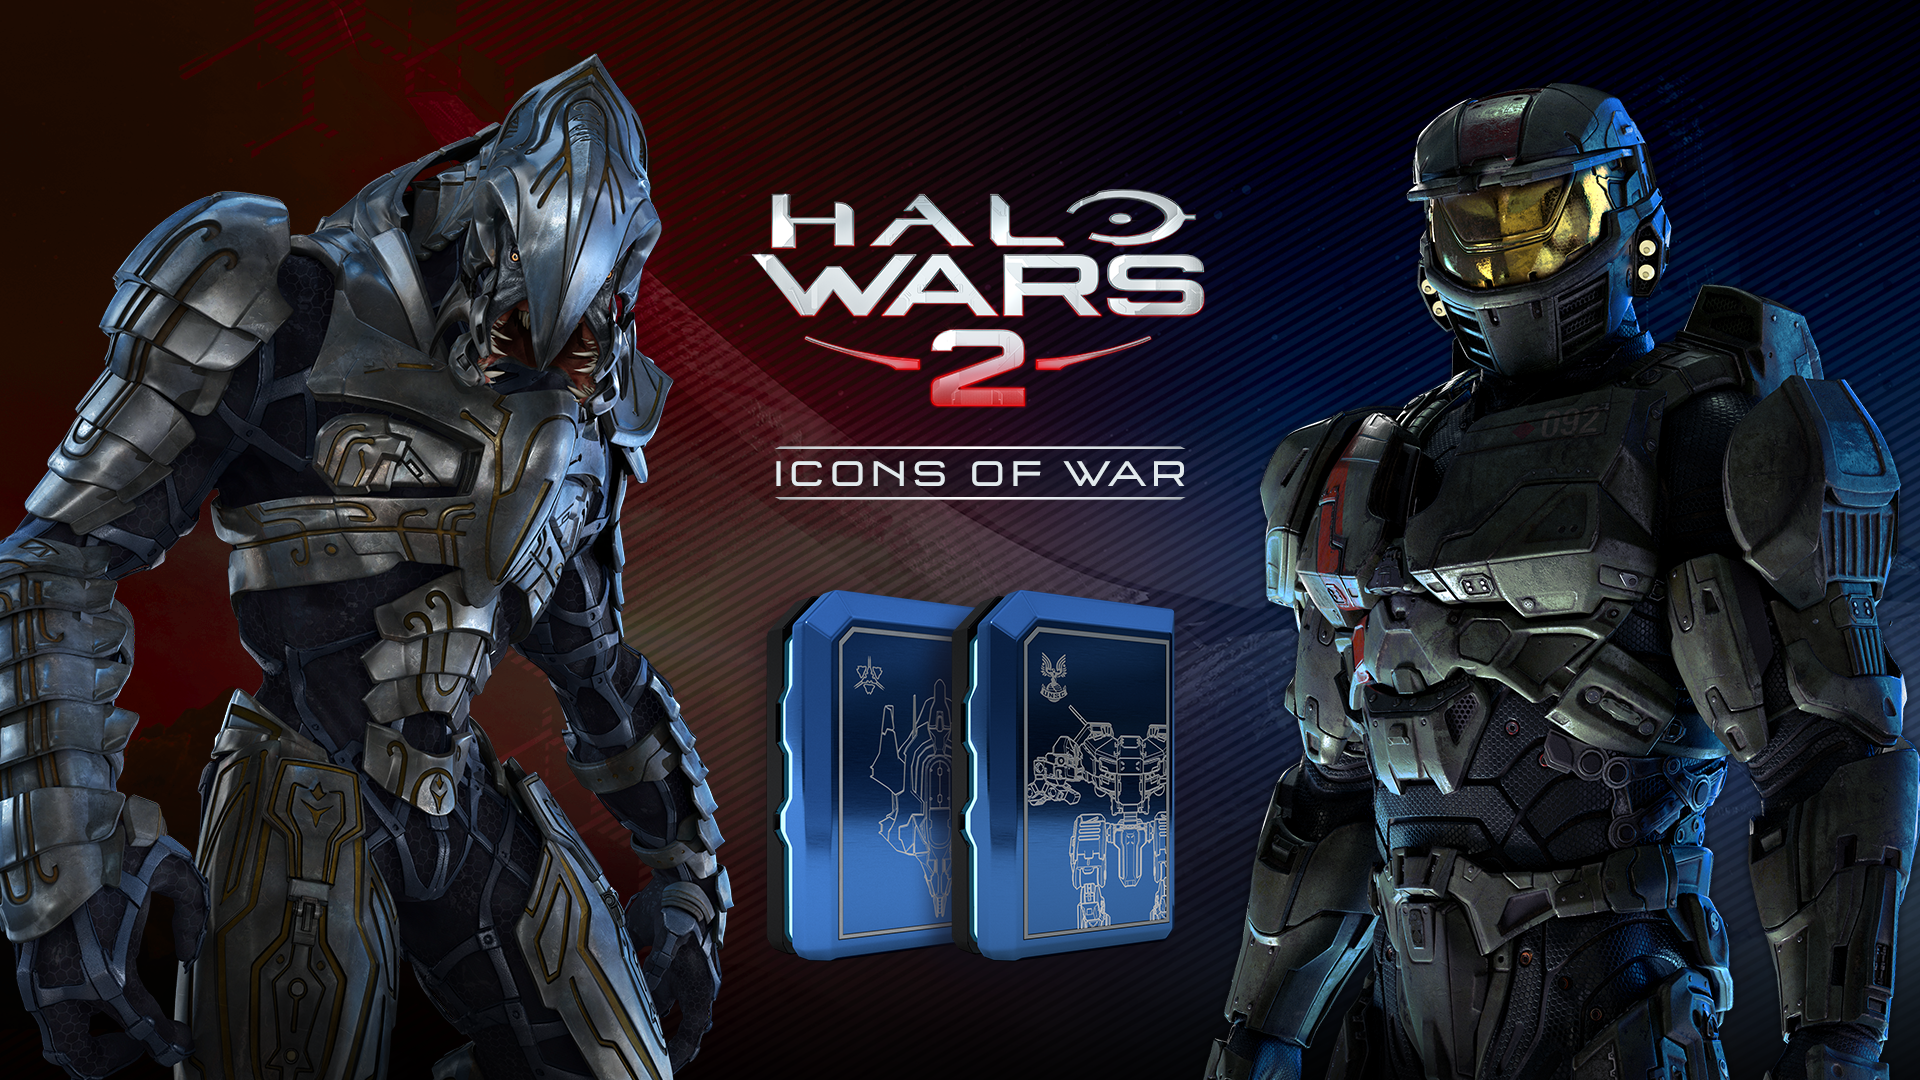 Category:Halo Wars 2 Downloadable Content | Halo Alpha